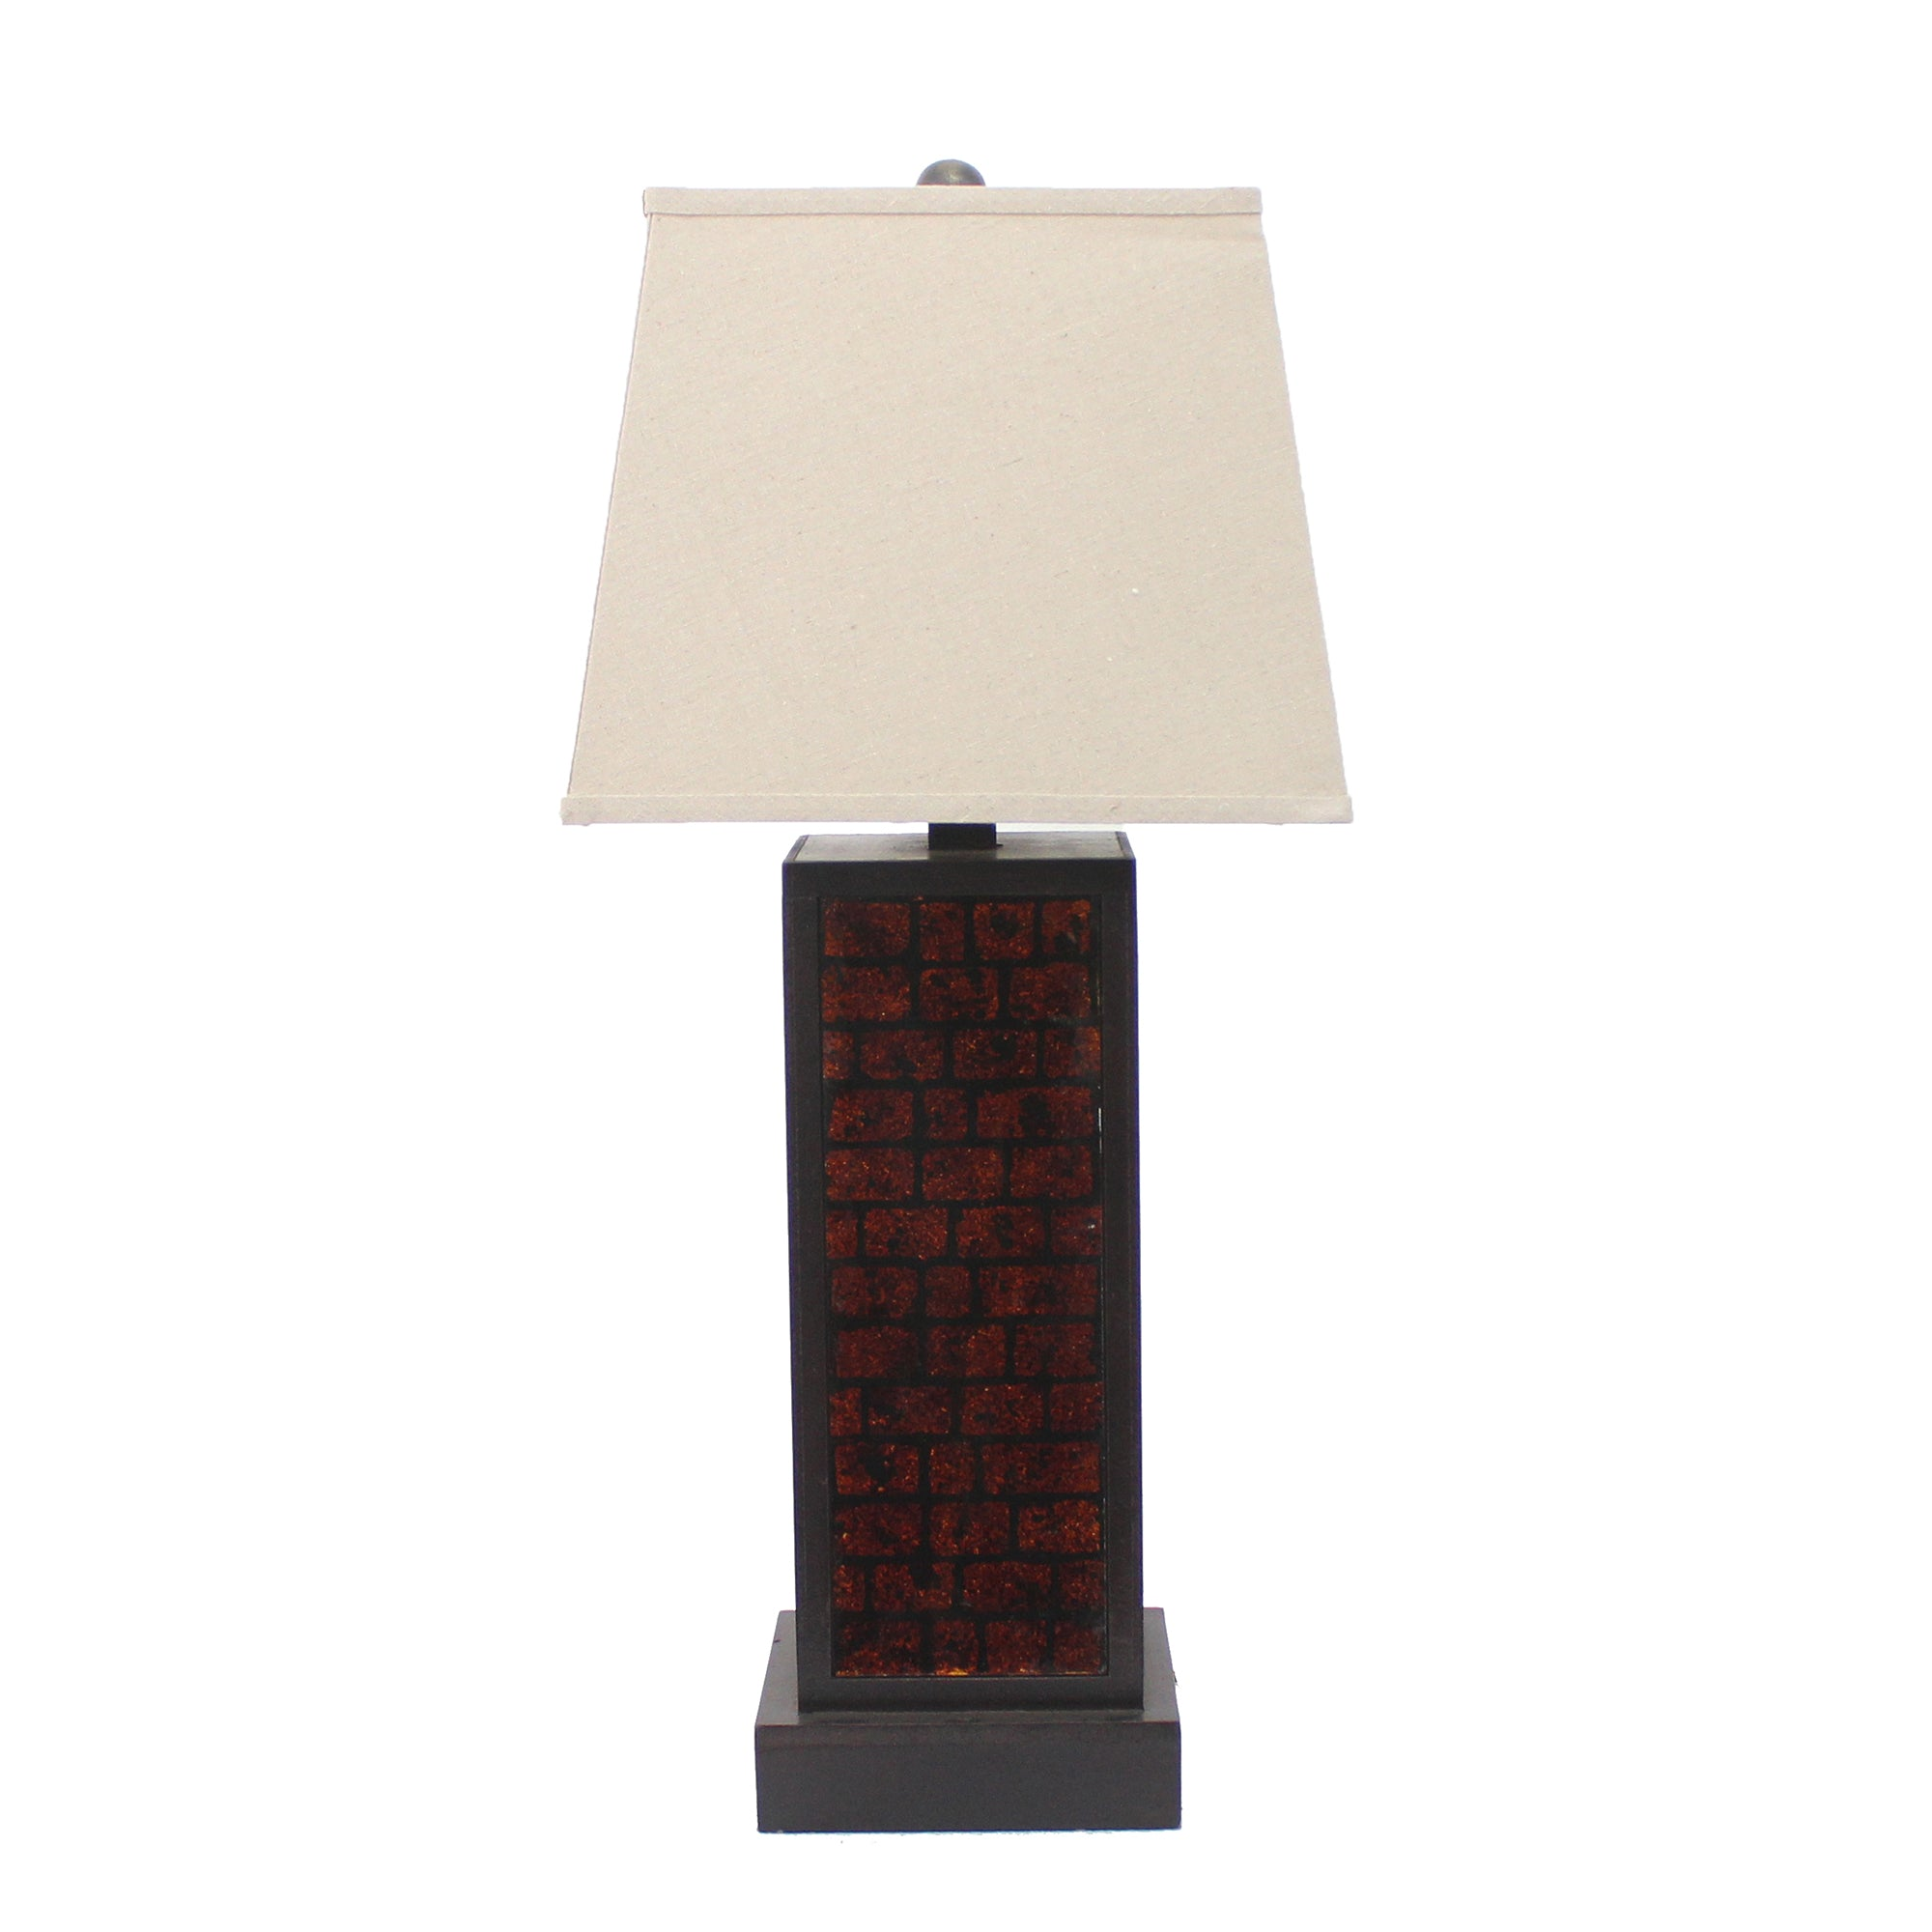 "31"" X 31"" X 8"" Burgundy Contemporary Metal Table Lamp With Brick Pattern"